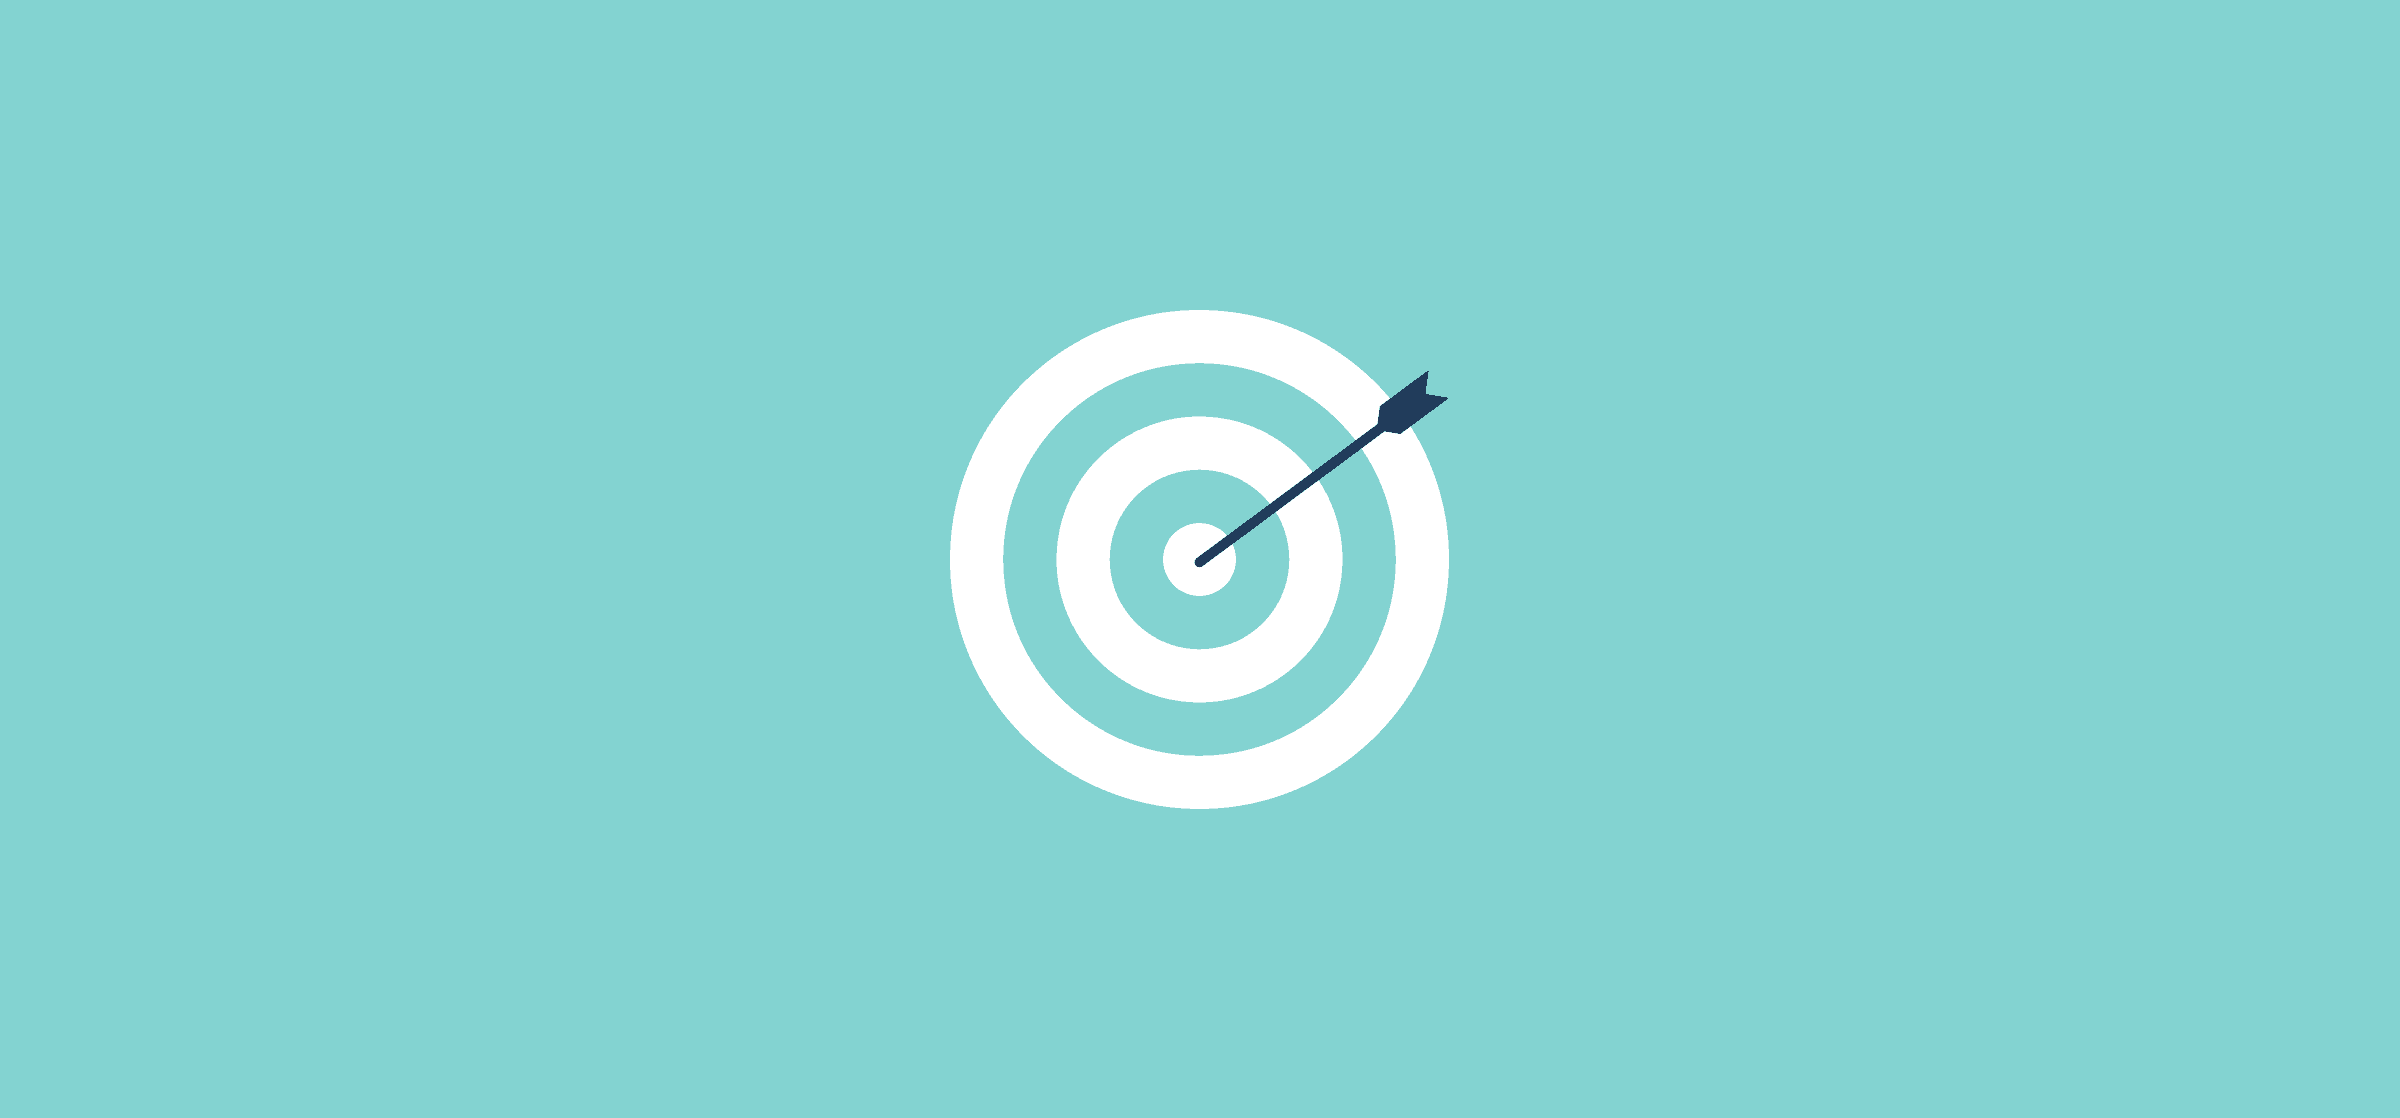 An arrow hitting a bullseye, representing project management tools and new year's resolutions